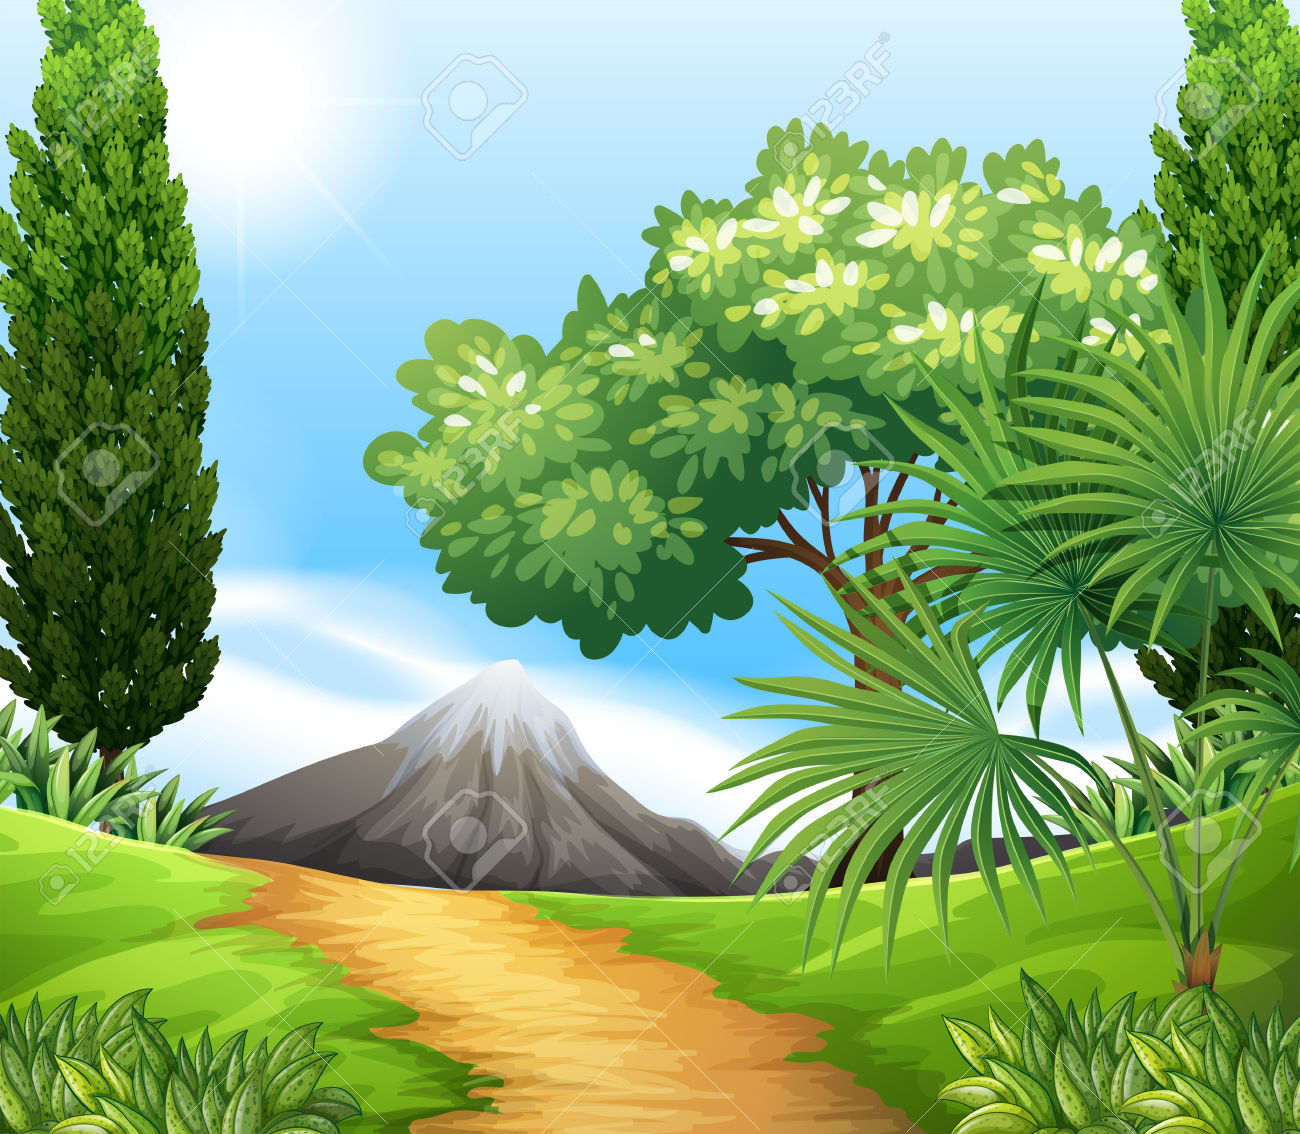 scenery nature clipart natural trees mountains background scene jungle pleasant vector cliparts wall clipground scenic soloveika фотках яндекс автор фото